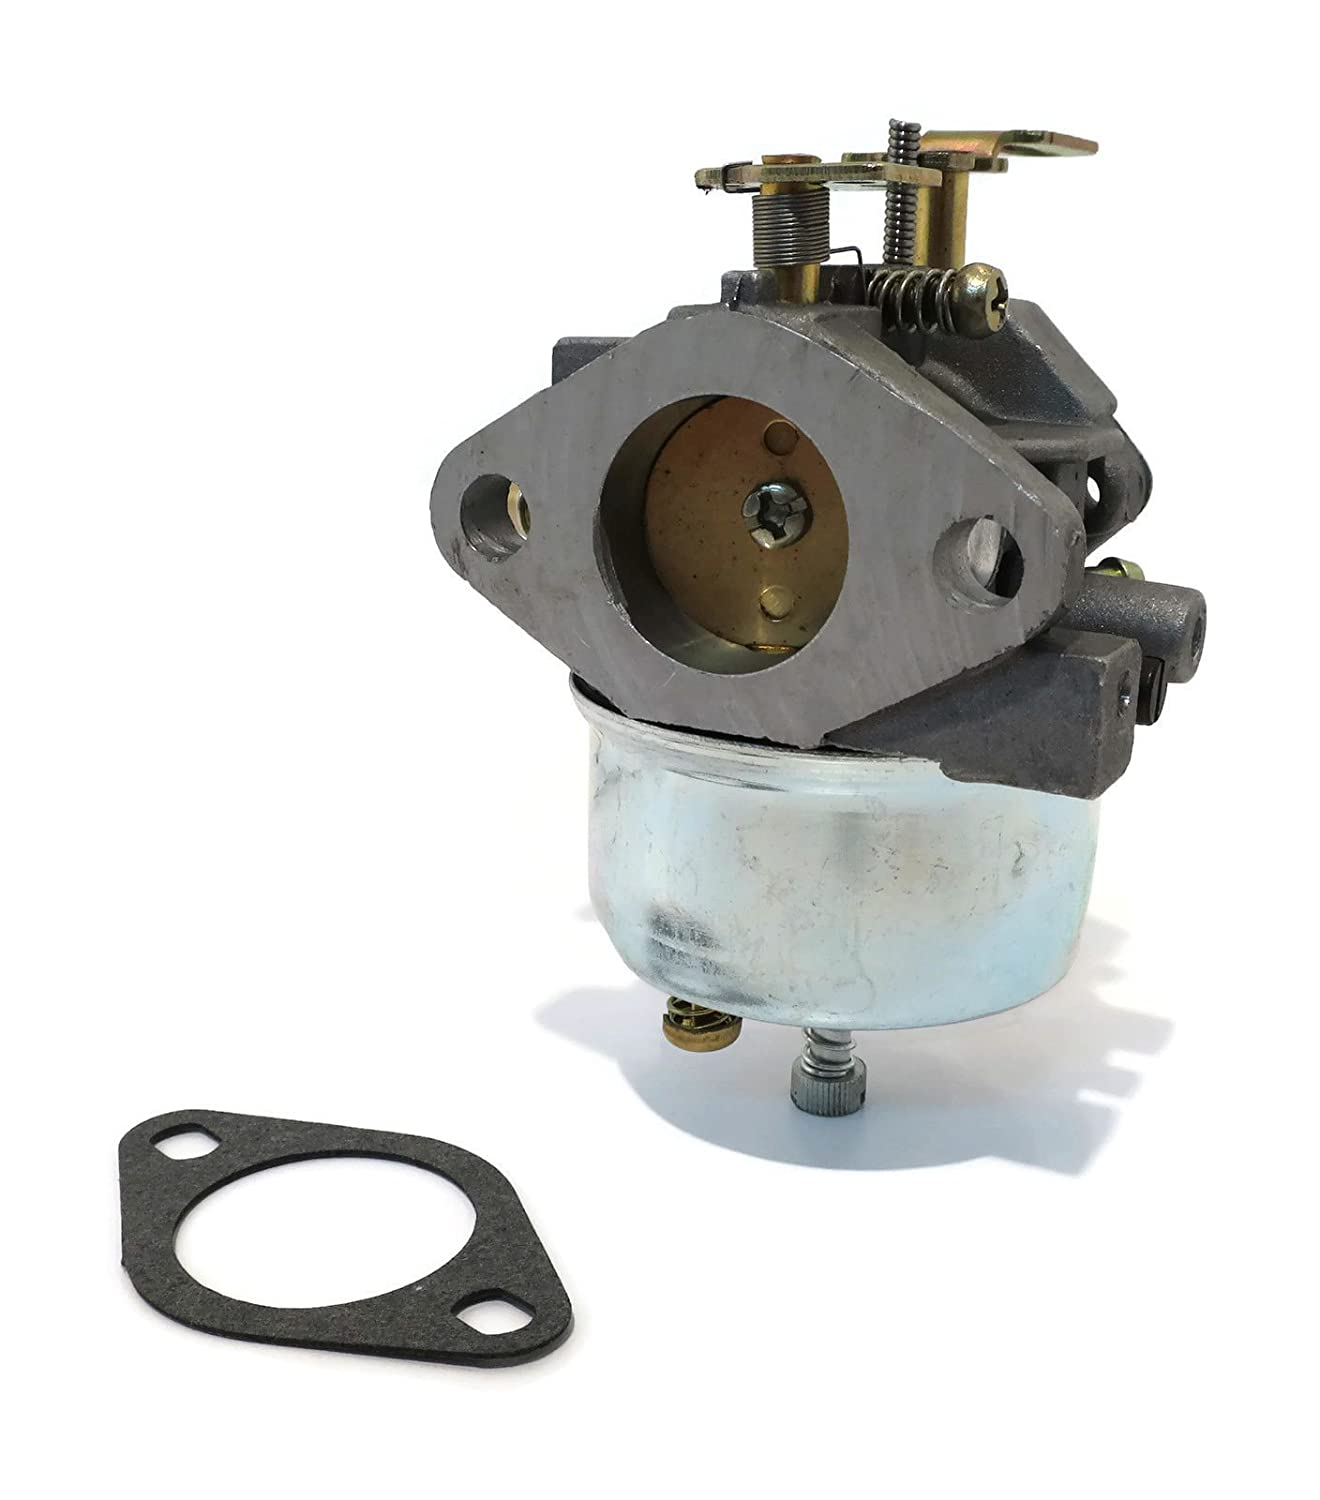 Amazon.com: The ROP Shop Carburetor Carb for John Deere Snowblowers TRS22  TRS24 TRS26 TRS27 TRS32 Engines: Garden & Outdoor